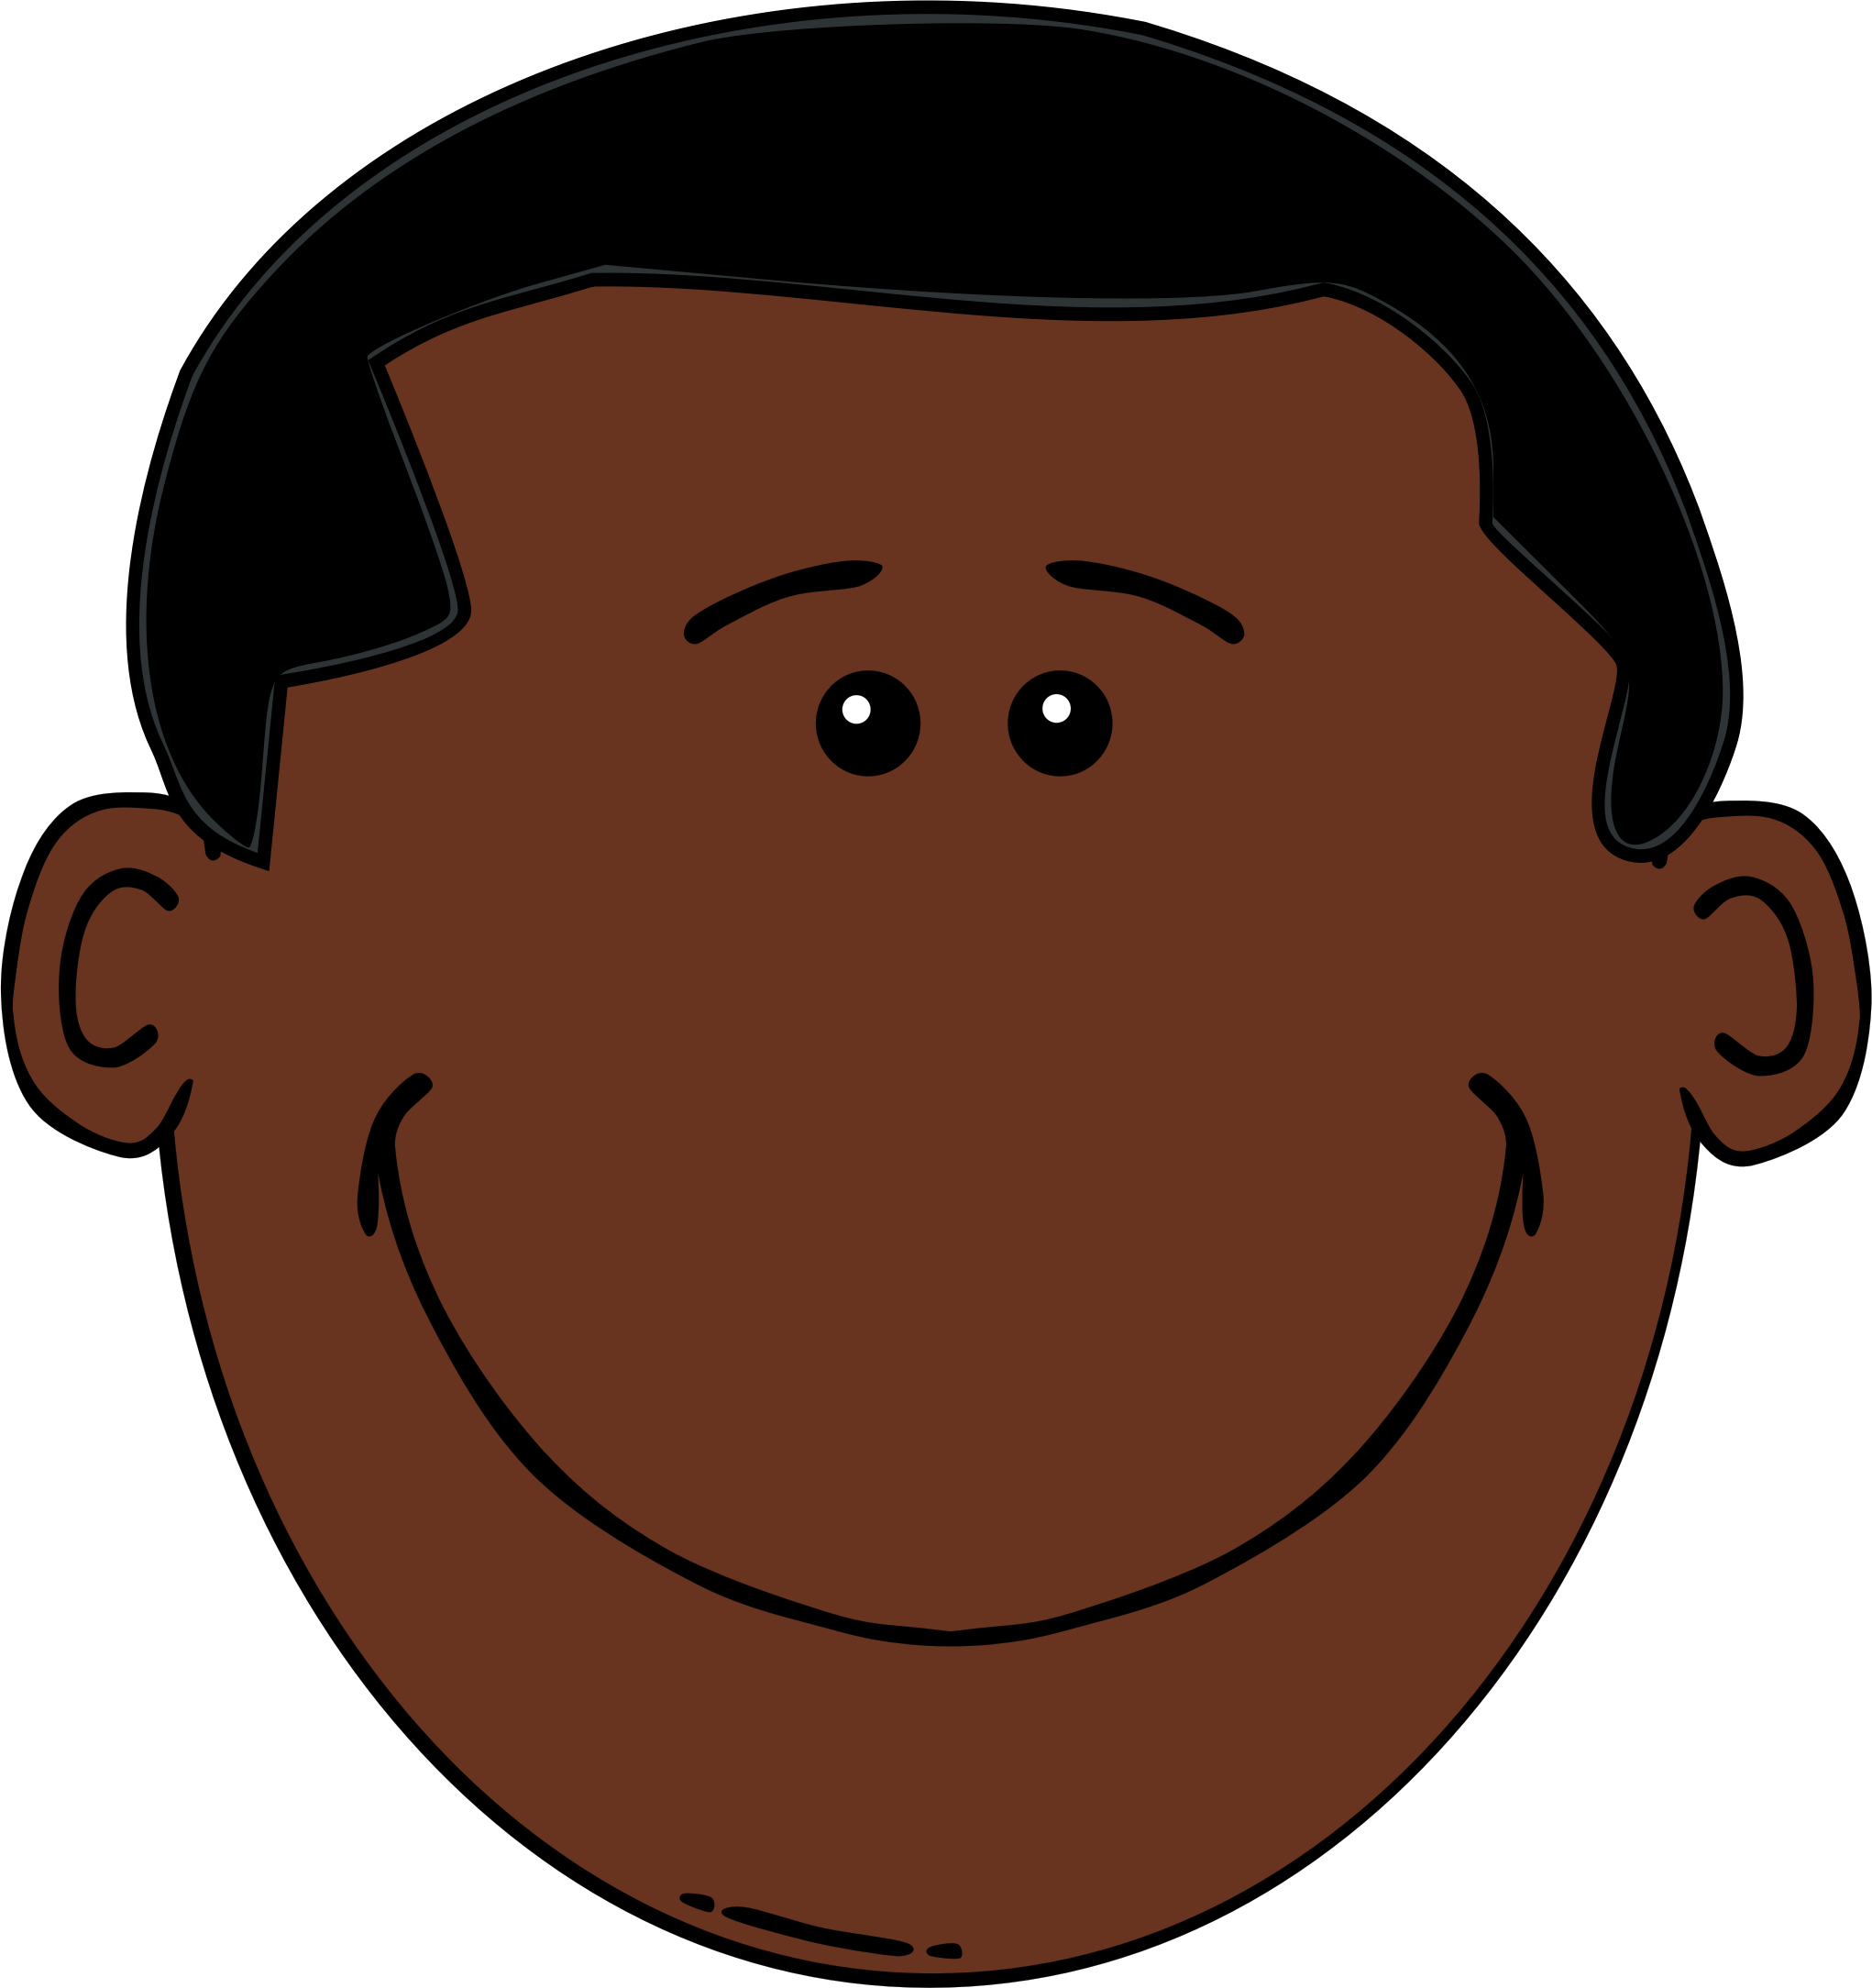 Photos boy face cartoon. Skin clipart brown skin